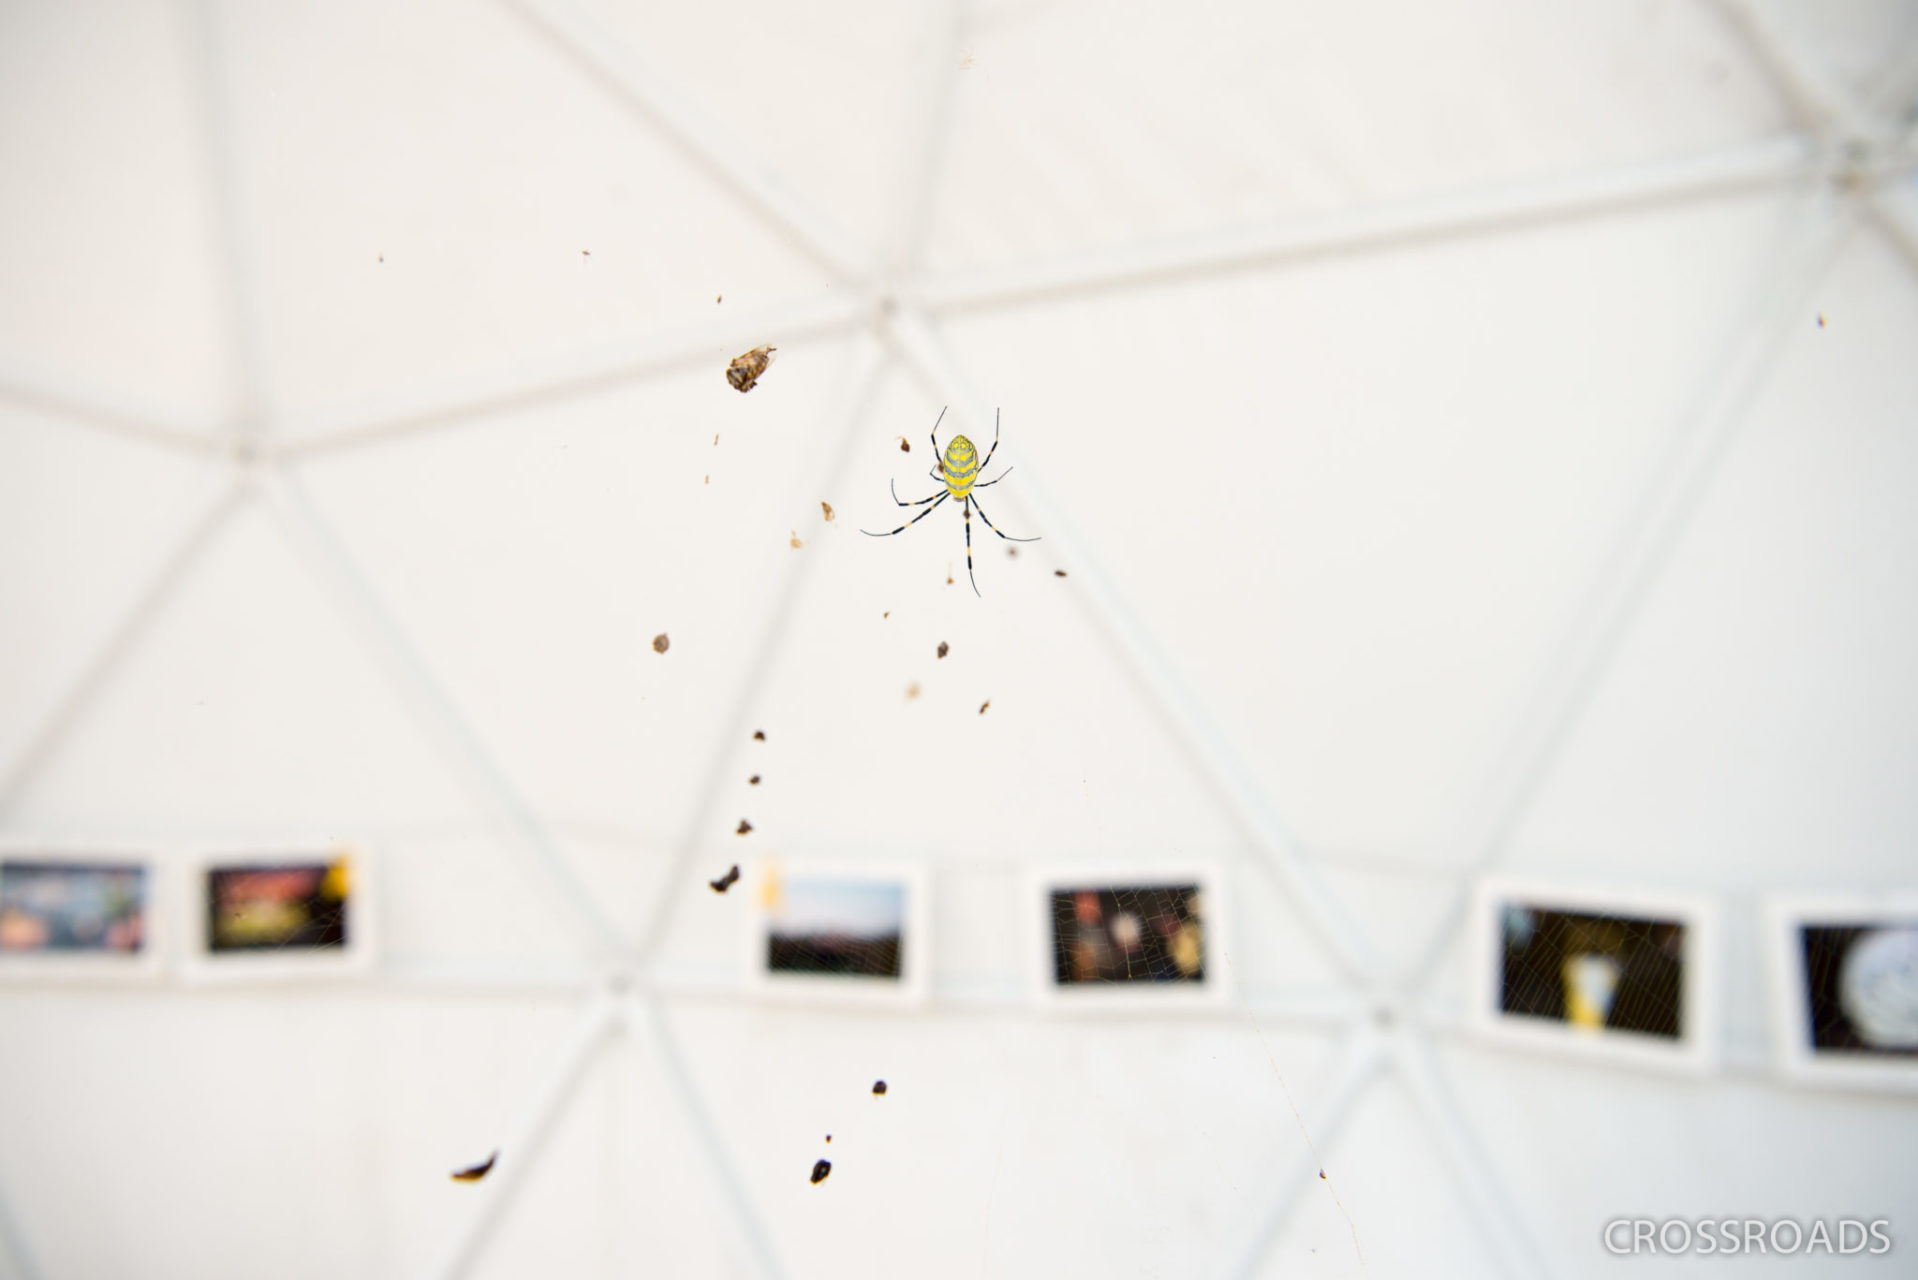 A yellow spider weaves her web in one of the three tents set up by Sewol parents, with photographs of the Sewol aftermath lining the tent's wall behind it. With the lookout now abandoned, nature is slowly taking is over. Strangely enough, much in the place is yellow – the colour of the Sewol remembrance ribbon –: this one spider and others, as well as flowers growing nearby.